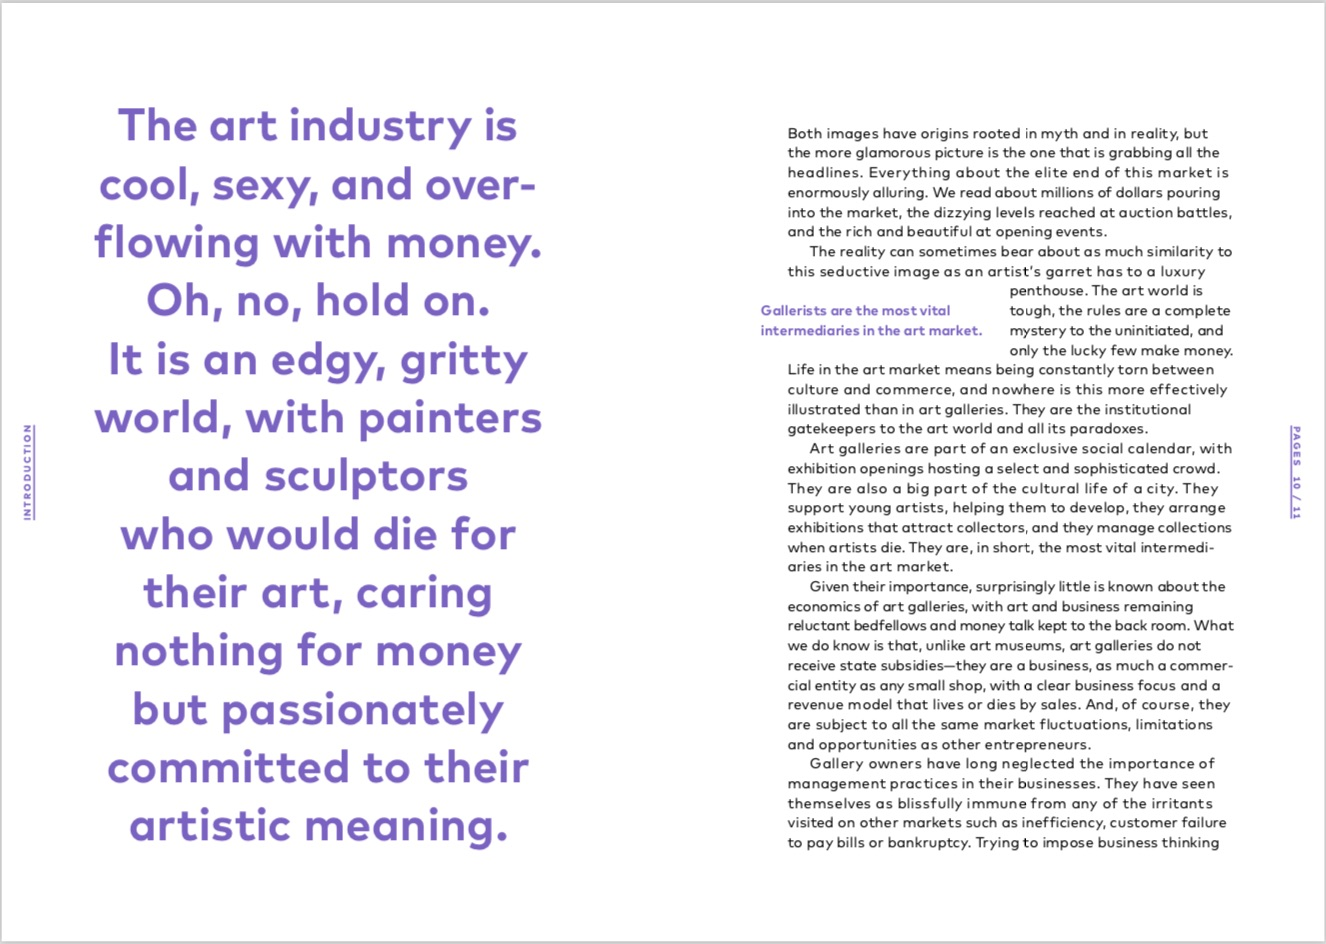 By Magnus Resch from Management of Art Galleries copyright Phaidon 2018